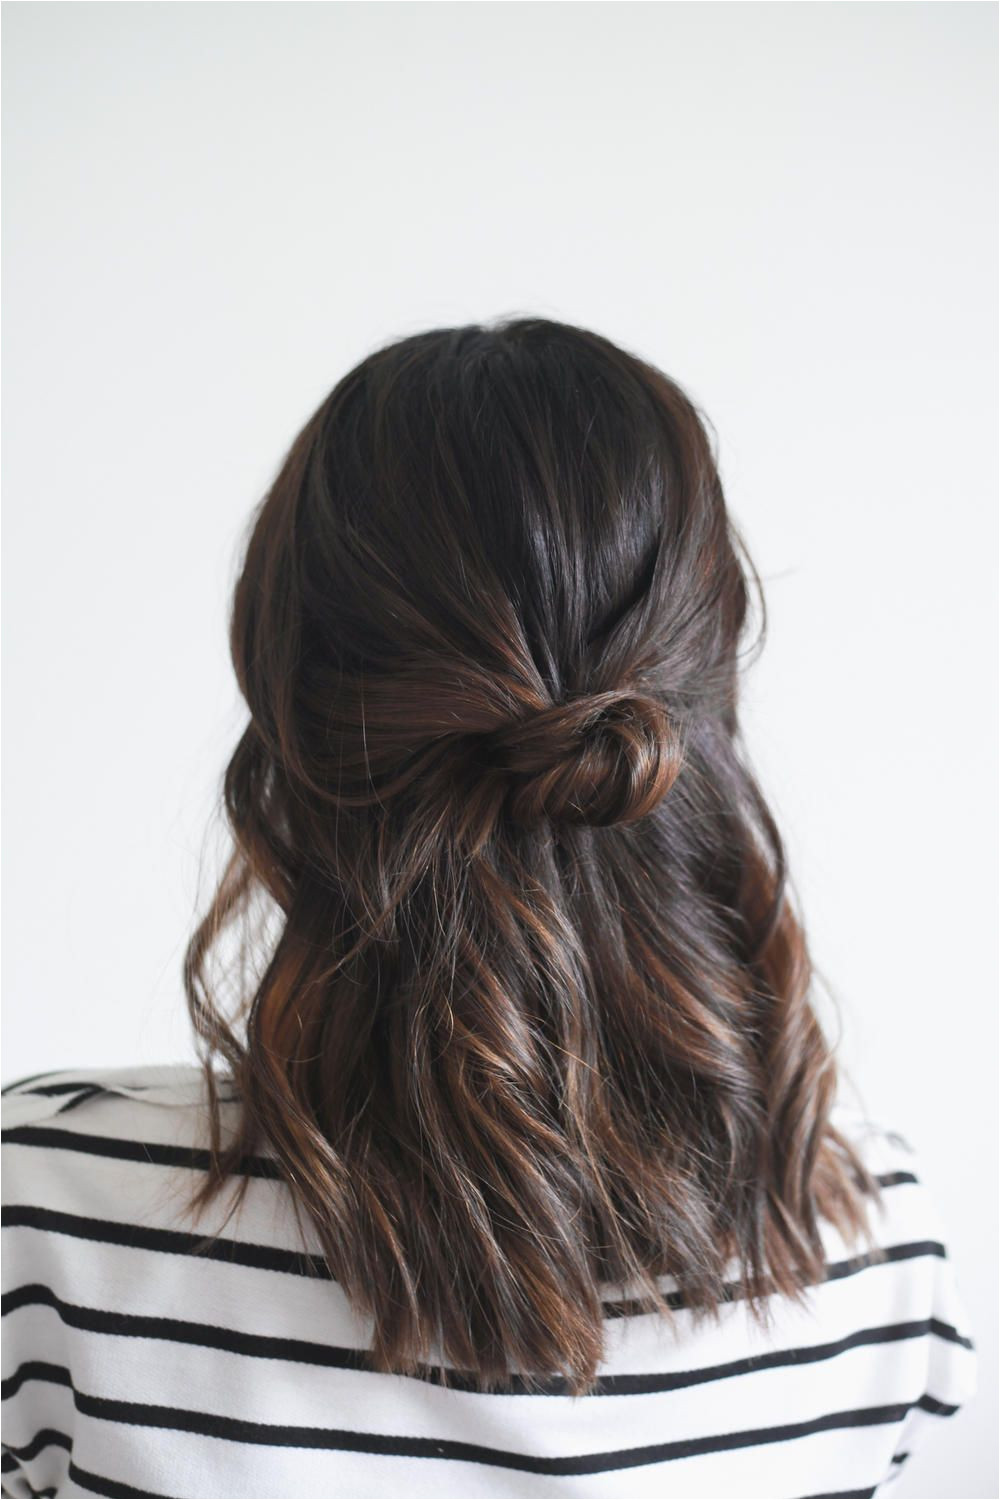 5 simple holiday hairstyles